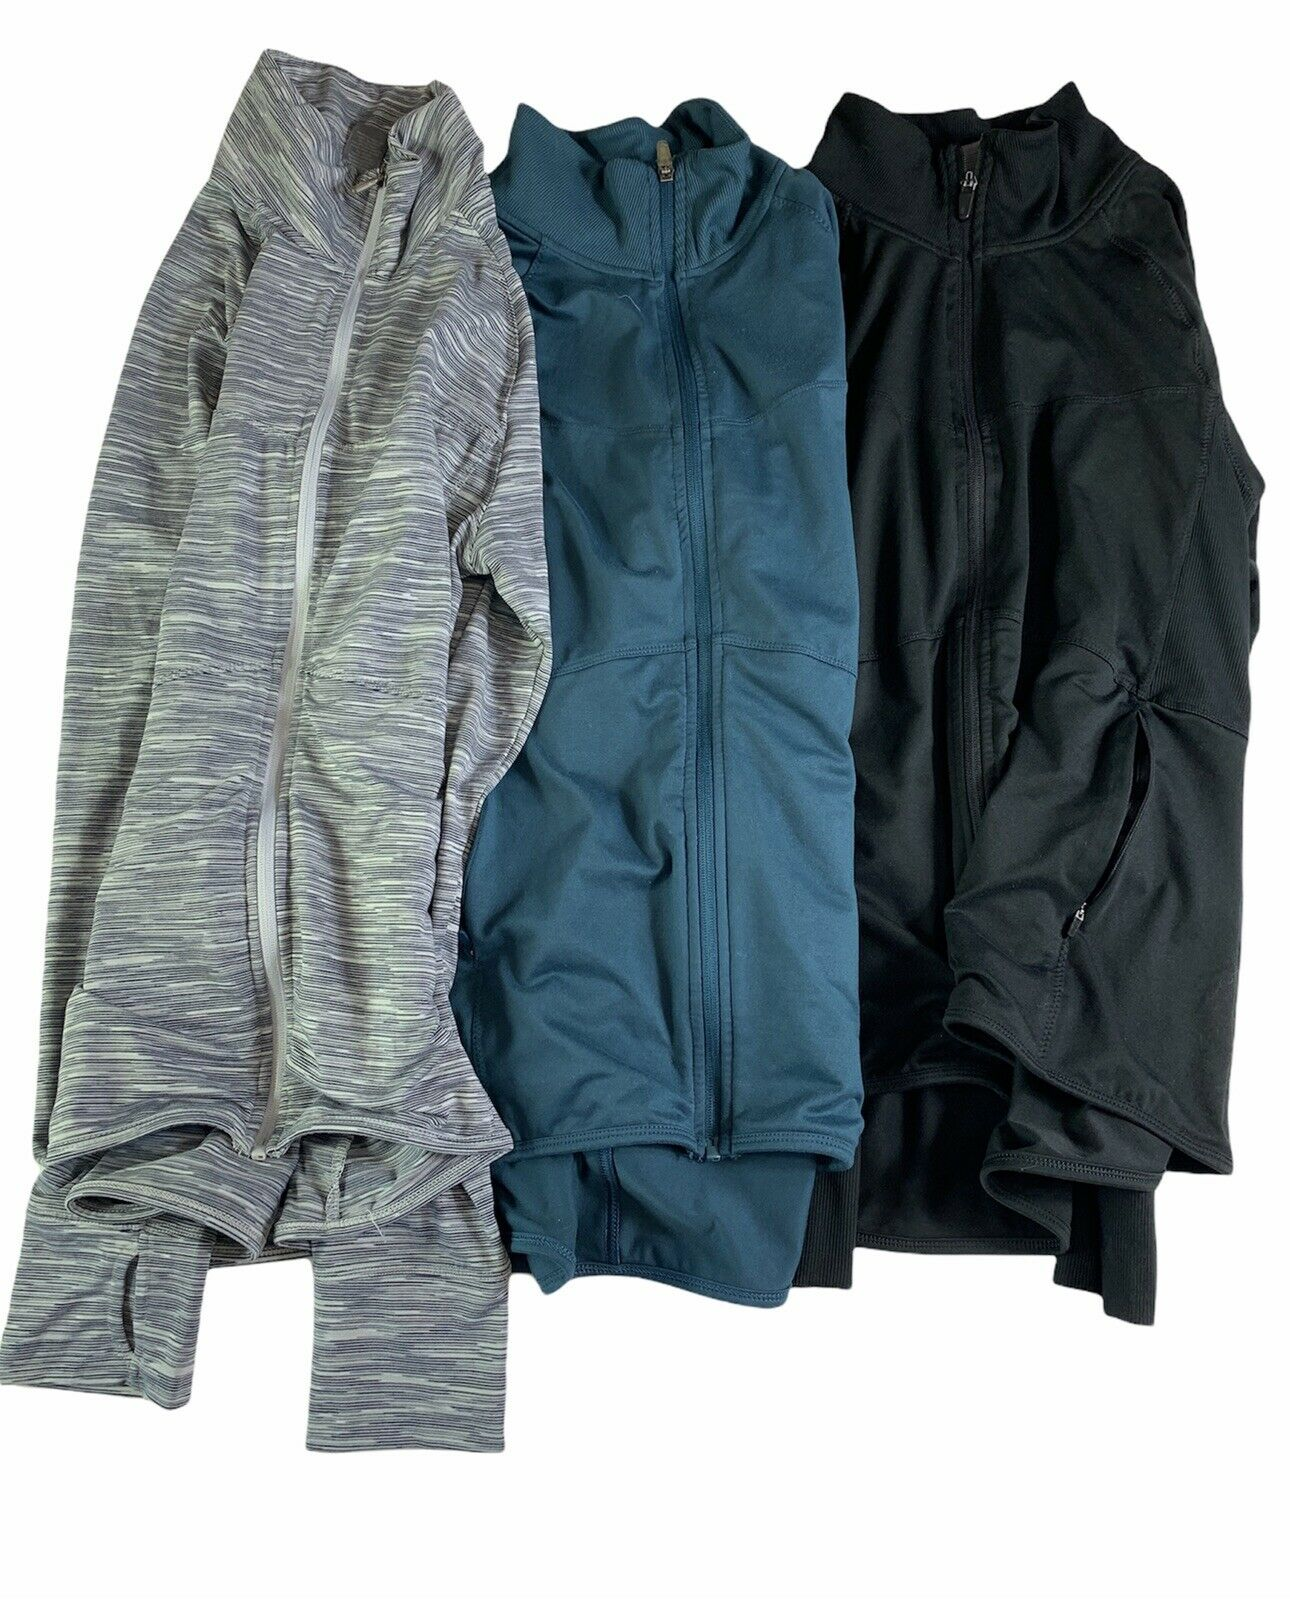 Champion C9 Lot of 3 Womens Full Zip Athletic jackets Large